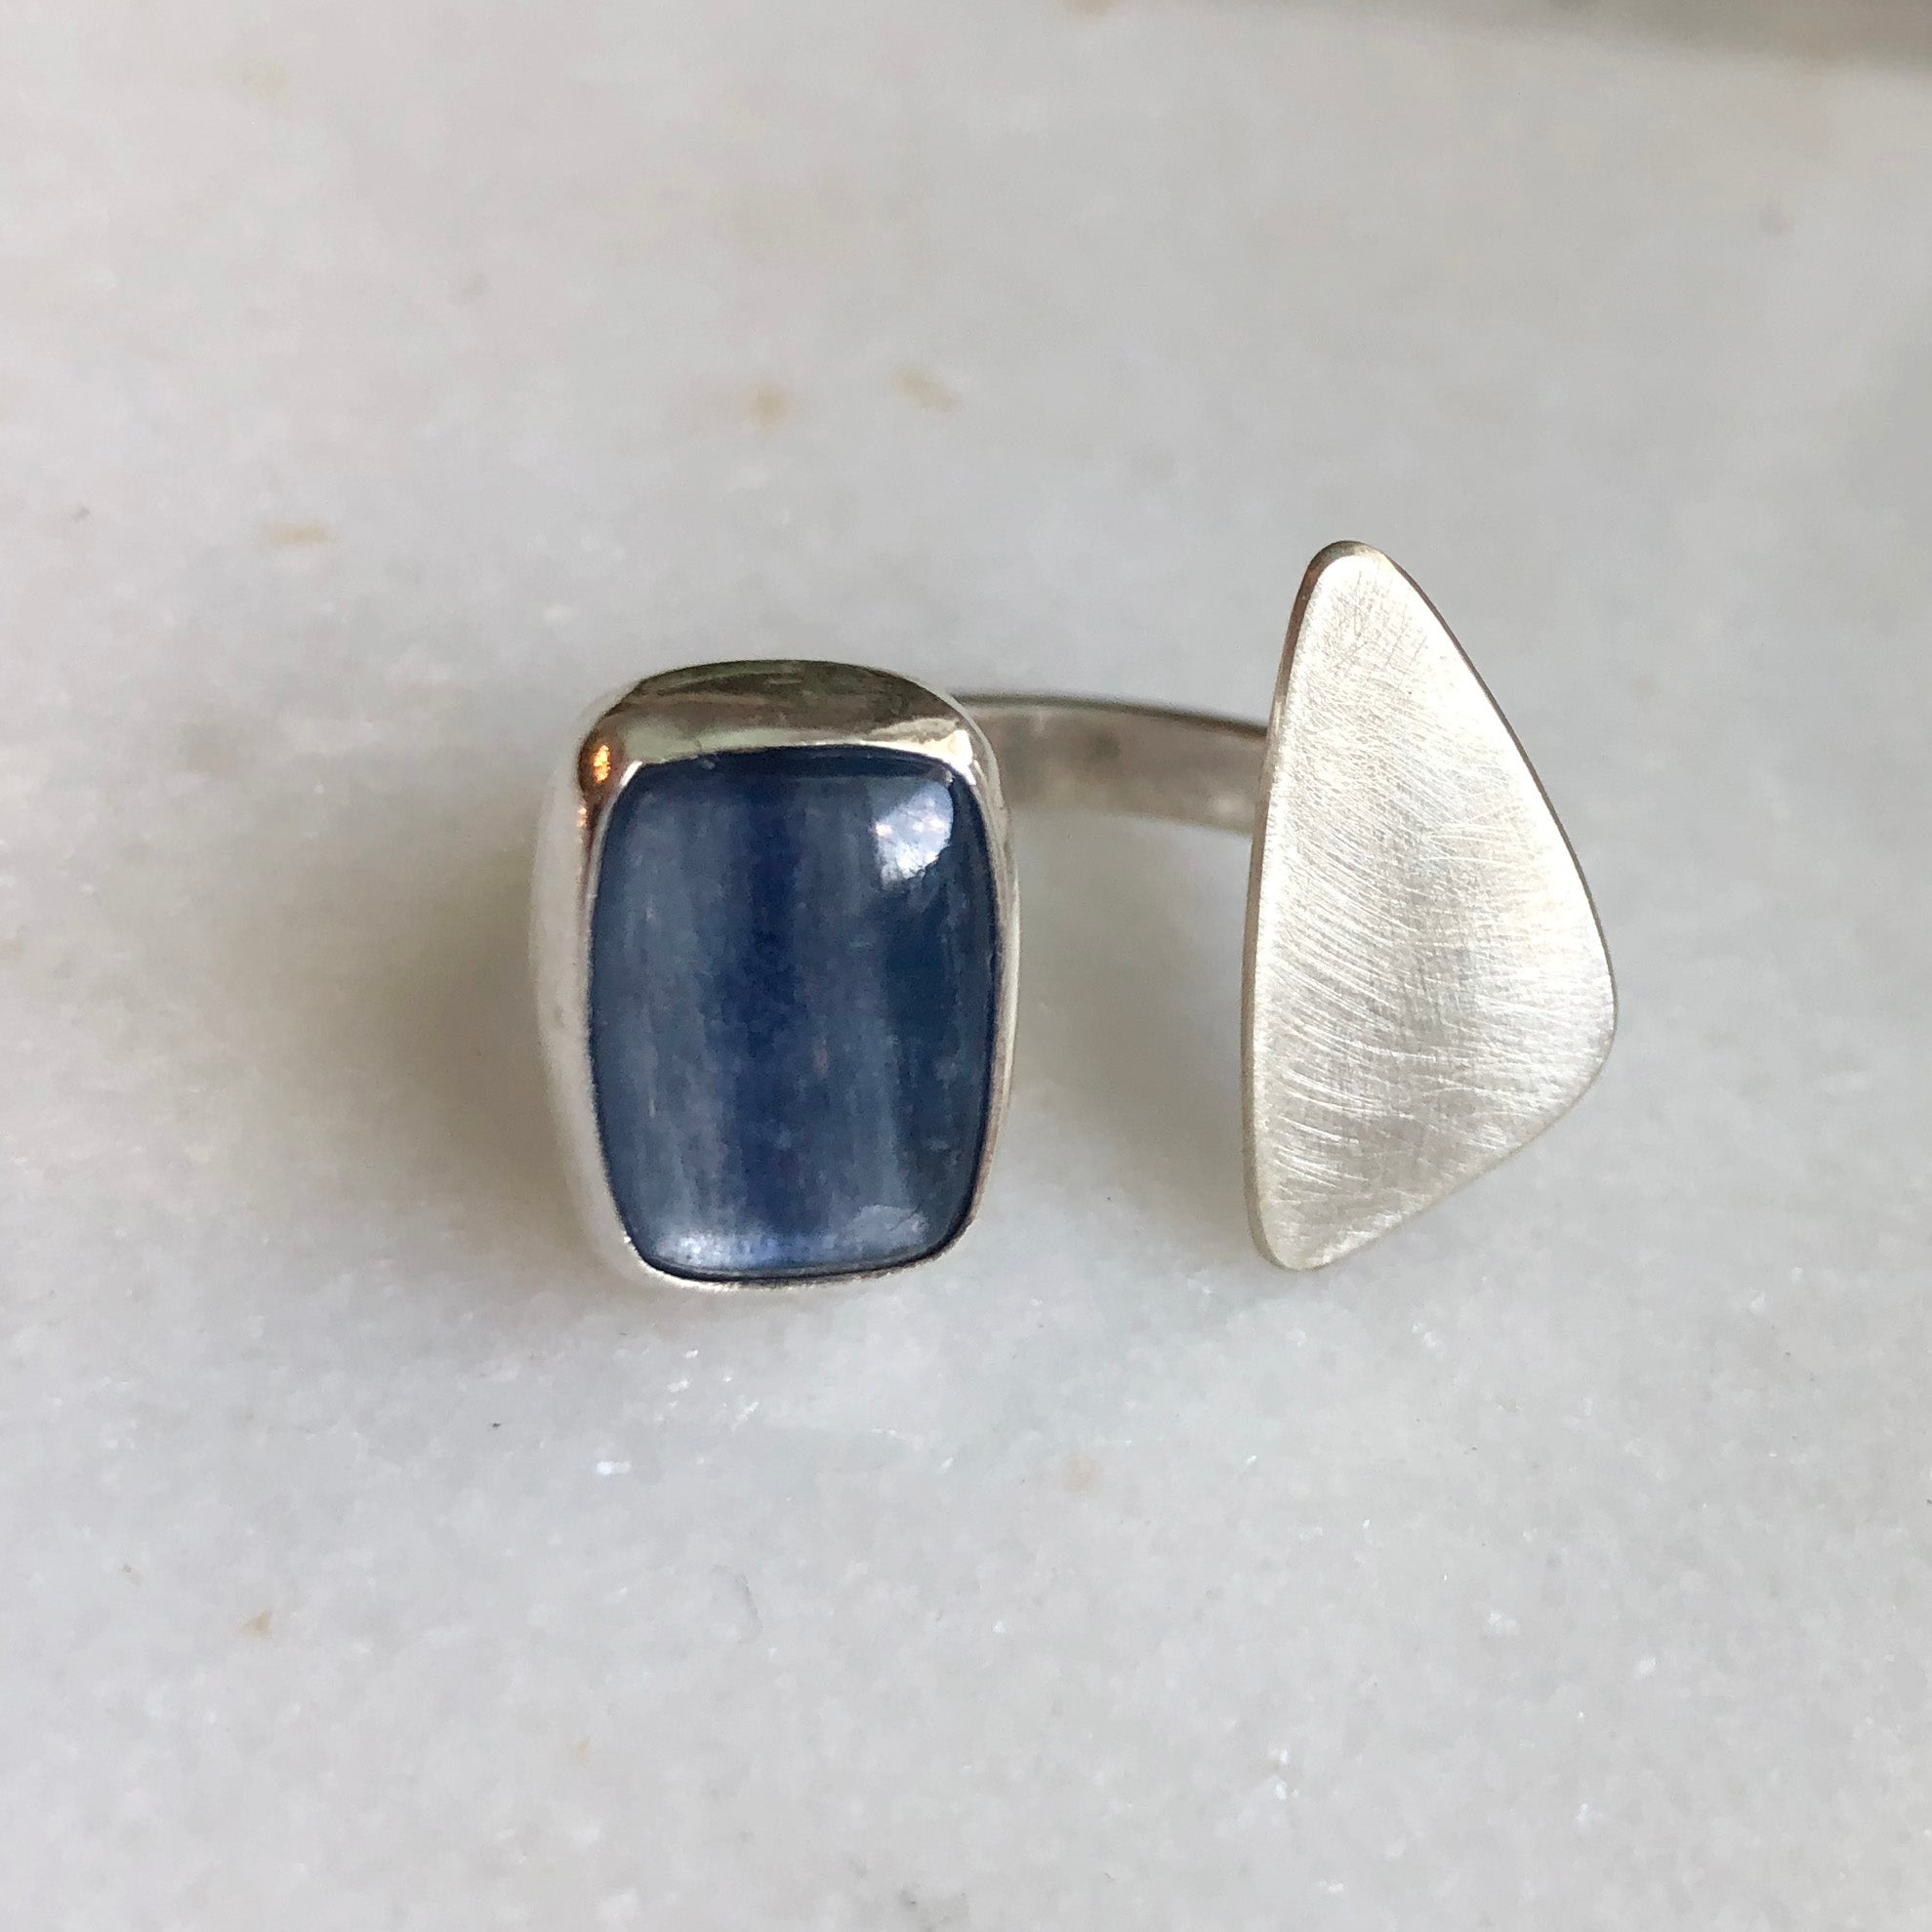 Blue Kyanite Tranquility Ring // size 7.5-8